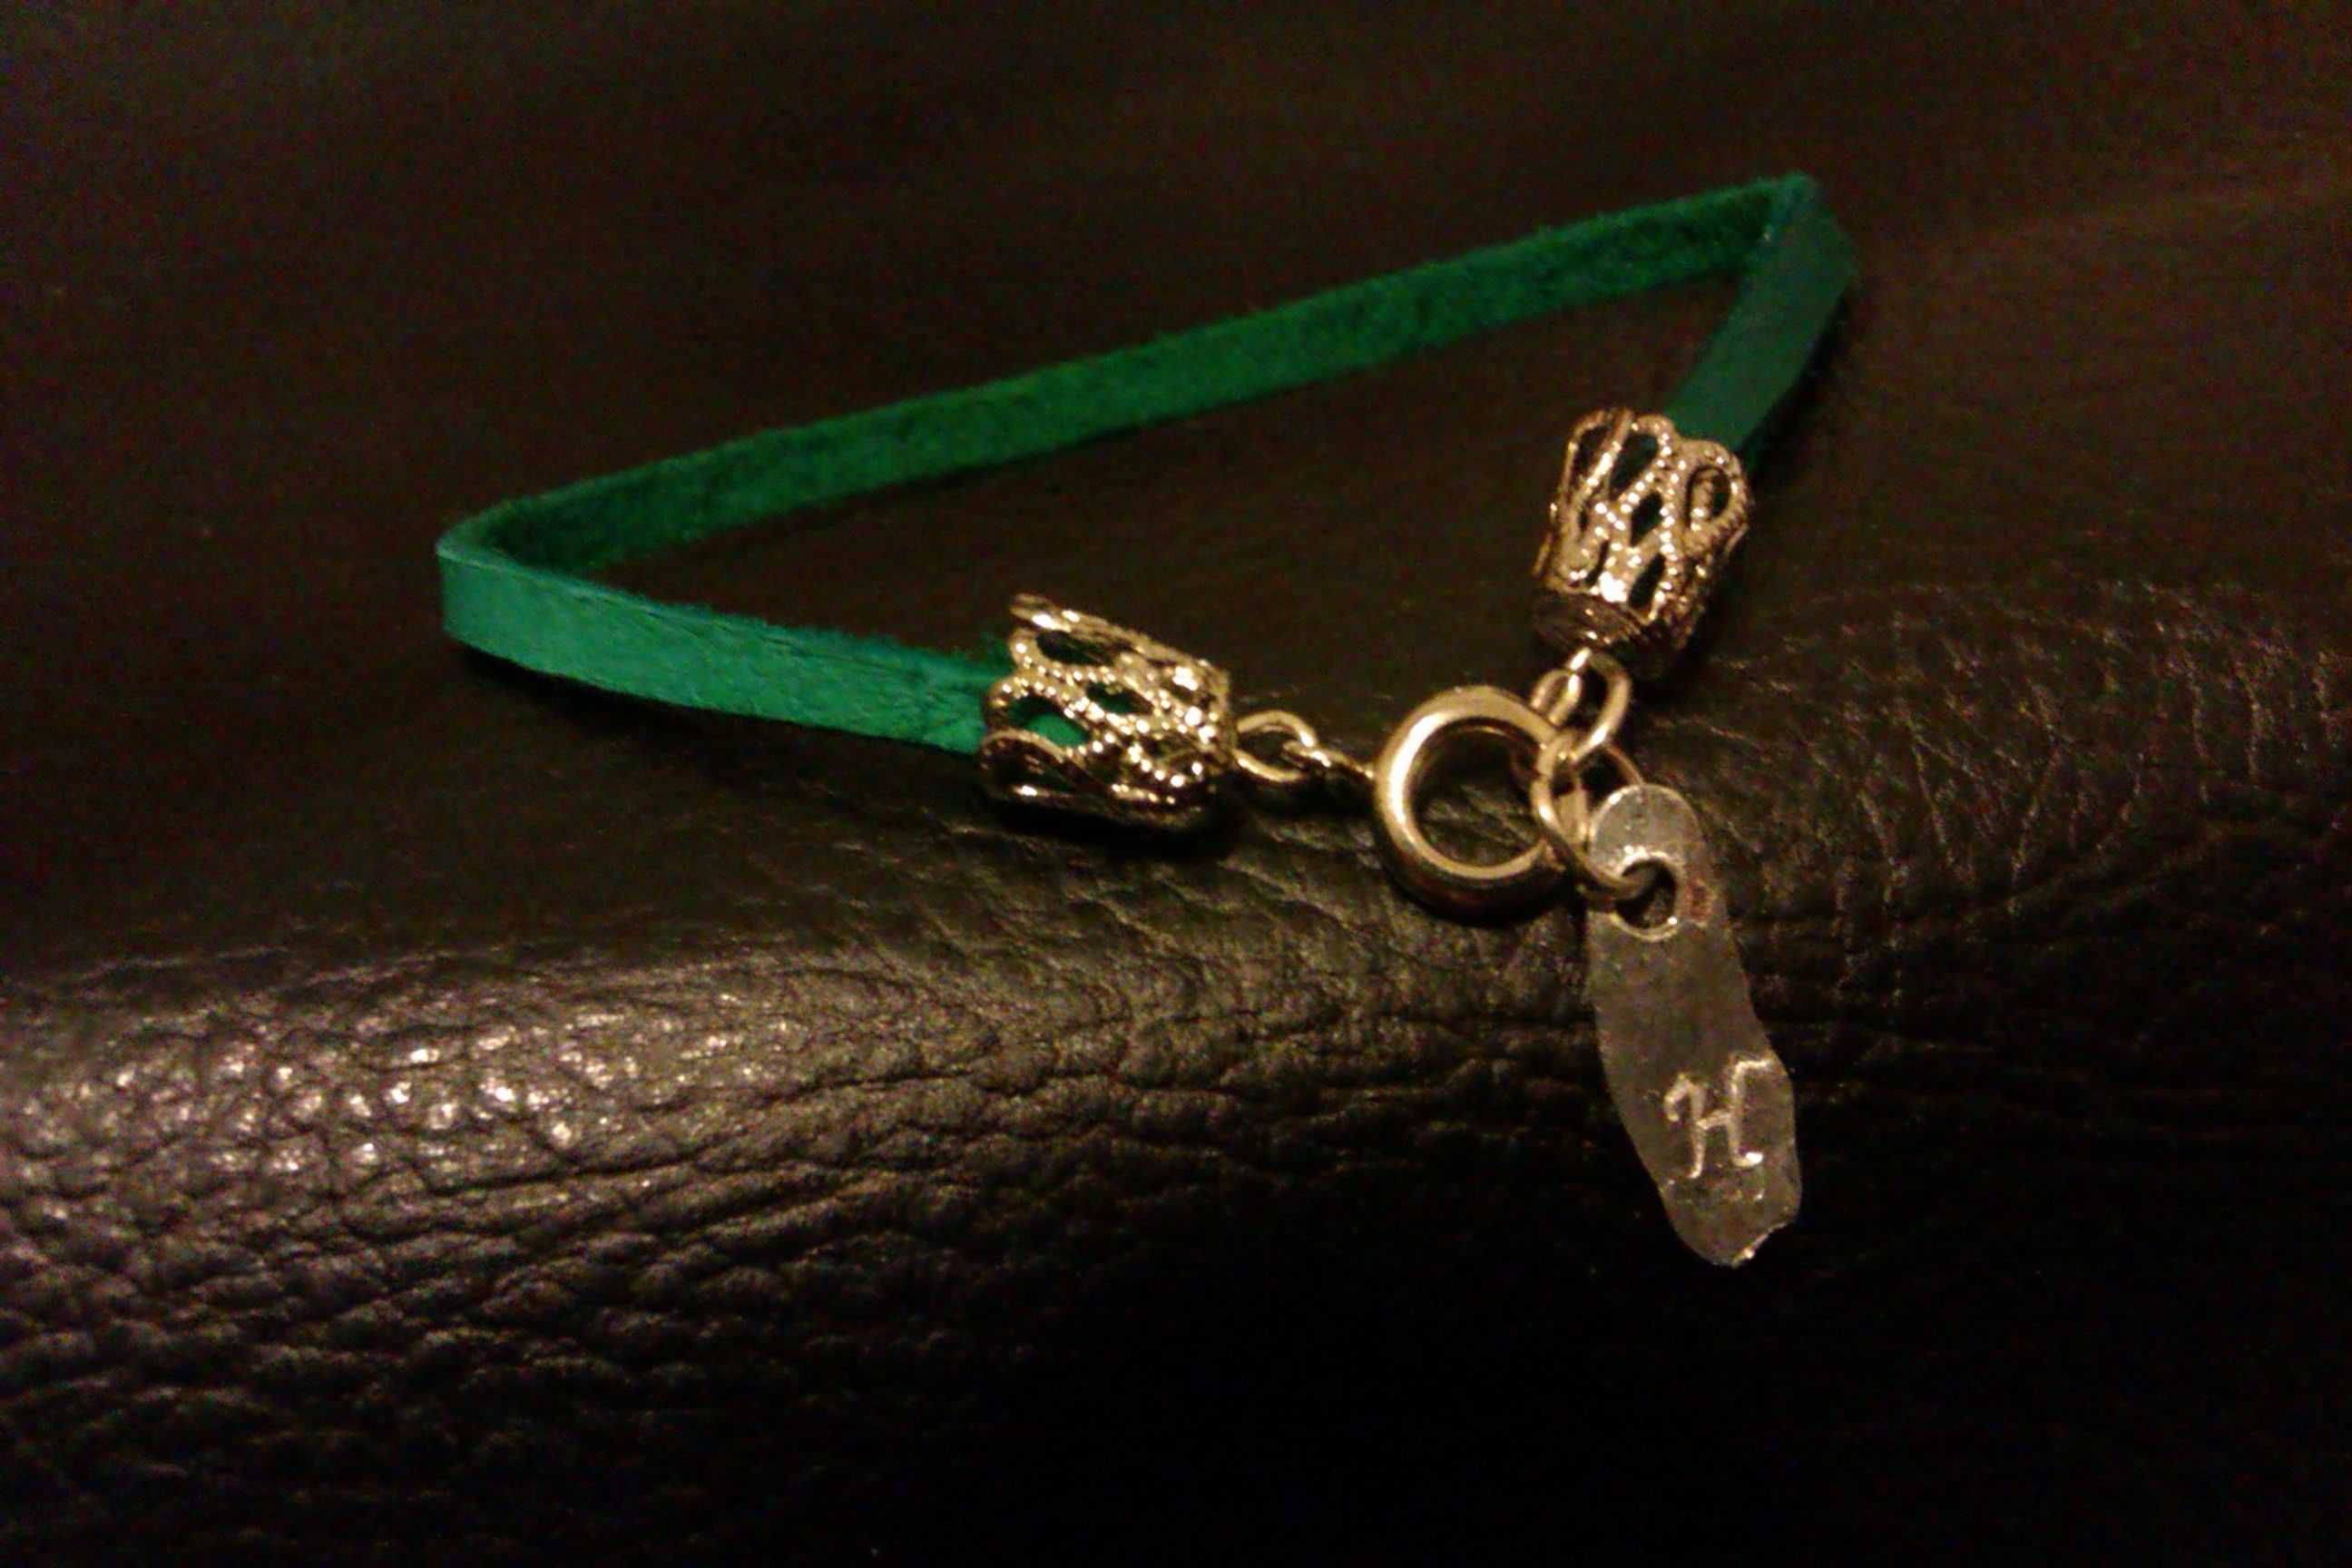 Green leather with monogrammed charm. -Haywood